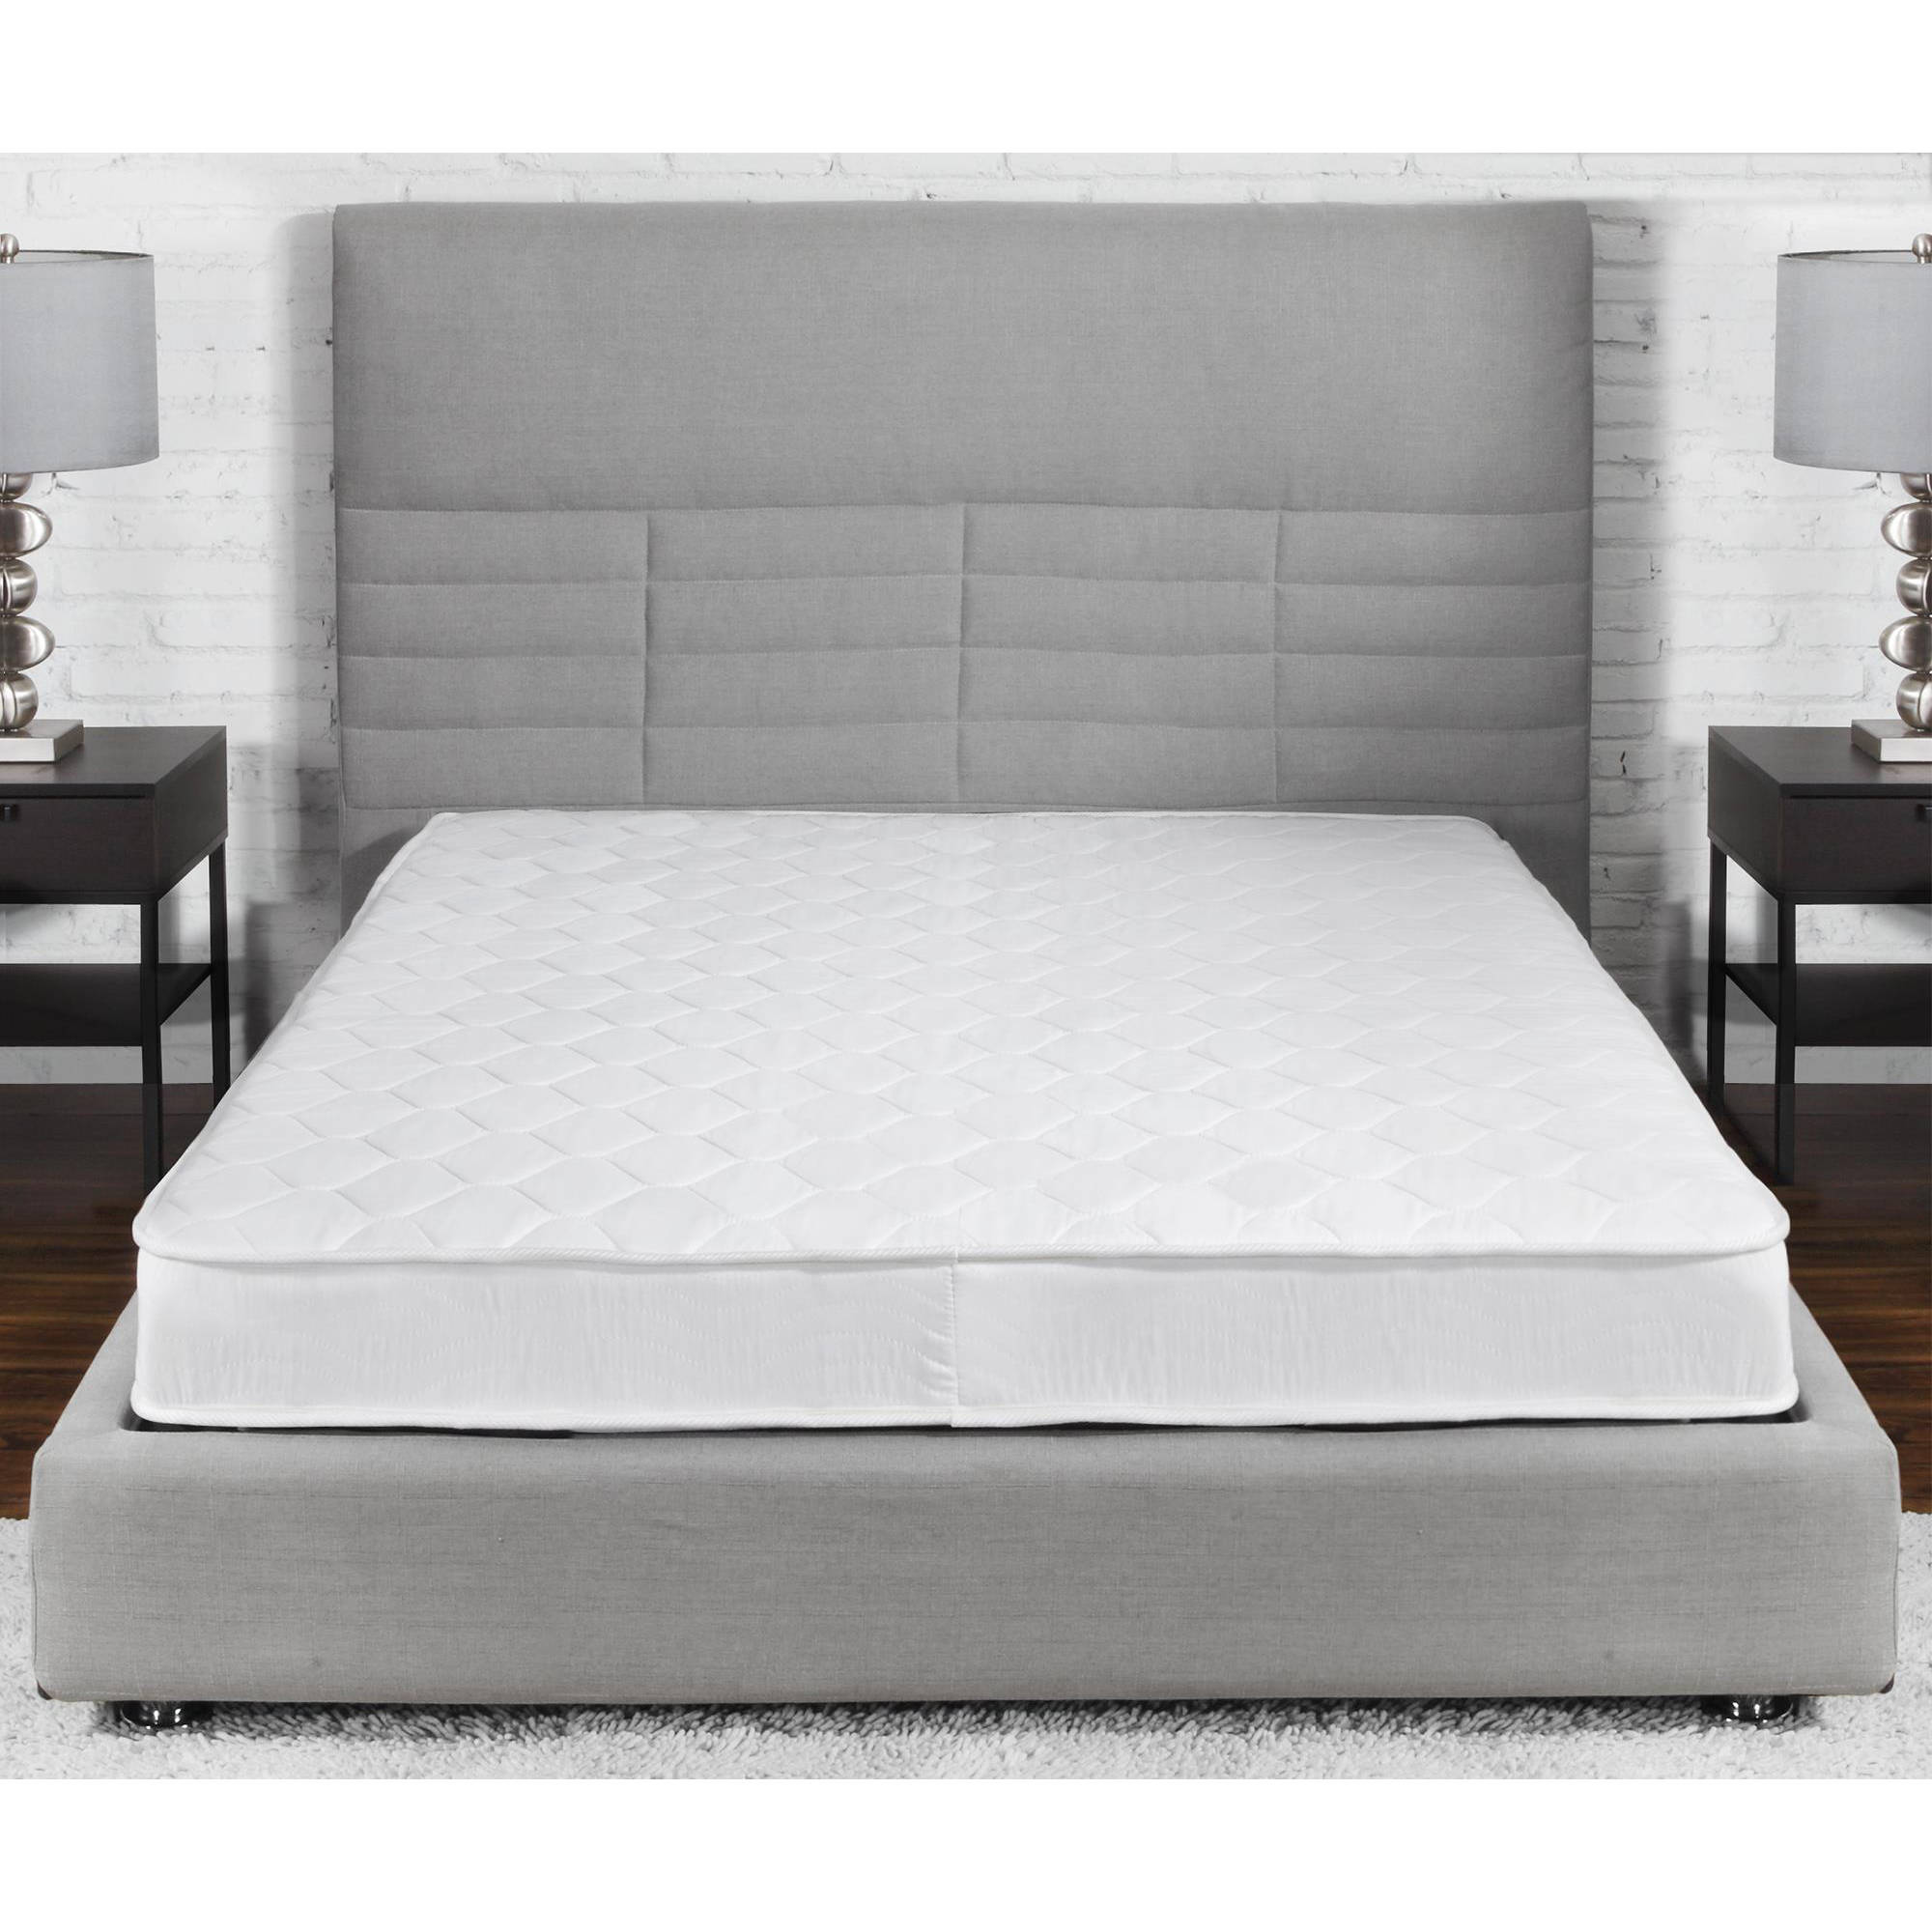 full spring box easy assemble watch mattress youtube to